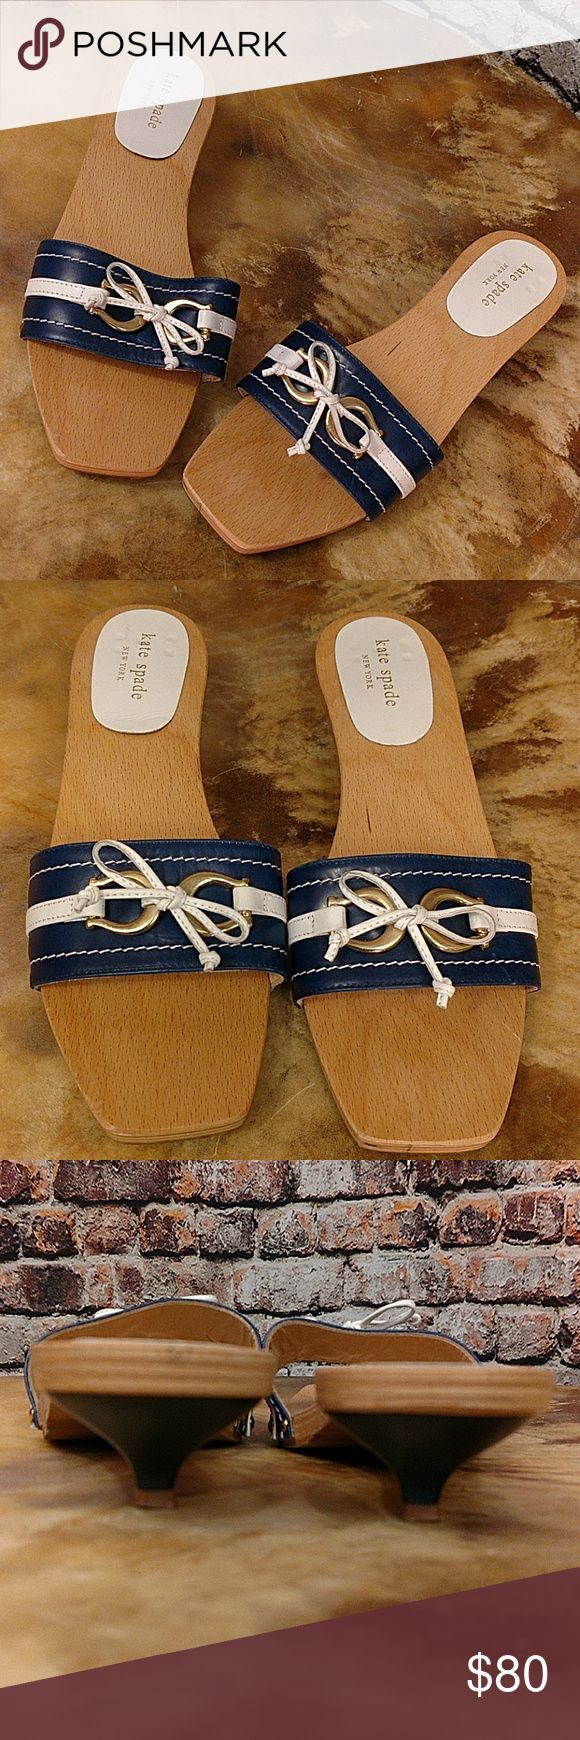 """Kate Spade Nautical Slide Shoes Size 8 Fun summer Kate Spade slide sandals. Wood sole with blue and white vamp, gold tone accents and white bow. Navy blue 1.25"""" kitten heels. Size 8. kate spade Shoes Sandals"""